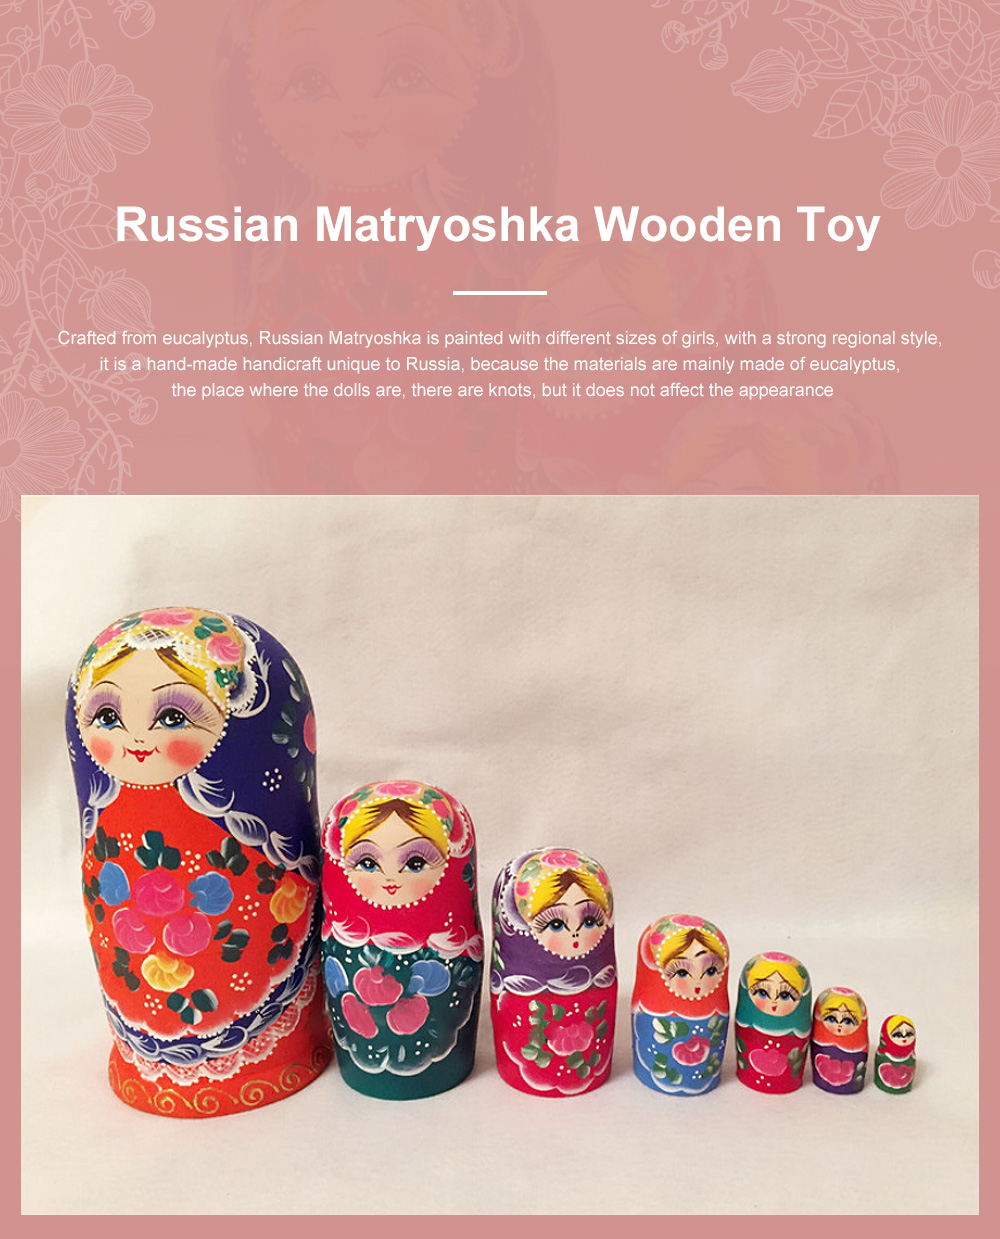 Matryoshka Dolls Nesting Stacking Wooden Russian Toys with Flower Ornament Hand Painted Wood Souvenir Folk Art Crafts 0